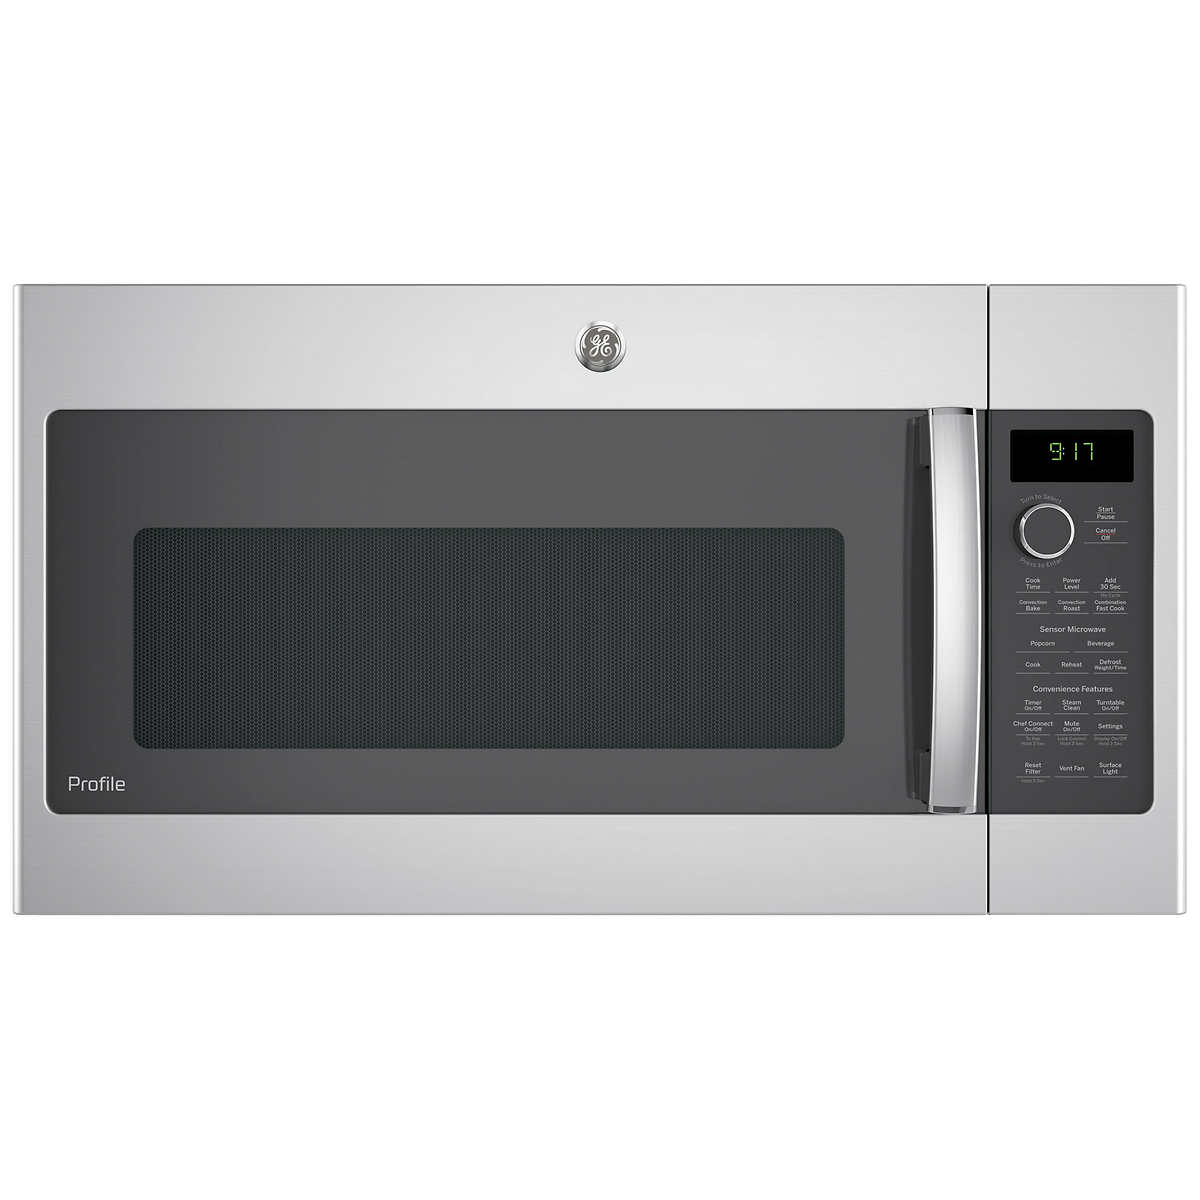 Ge Profile 1 7cuft Convection Over The Range Microwave Oven In Stainless Steel